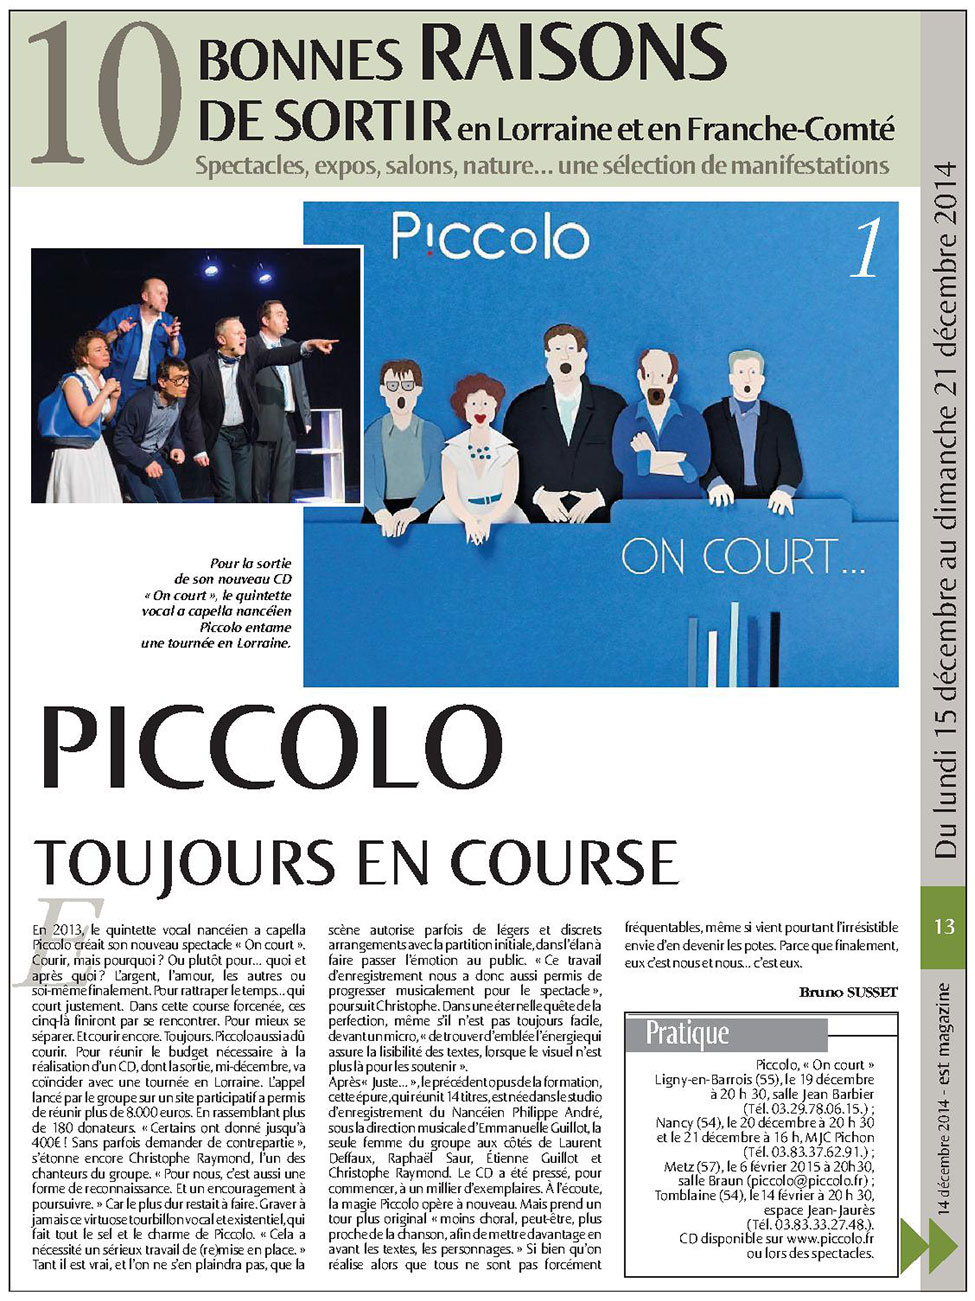 Piccolo-article14.12.2014